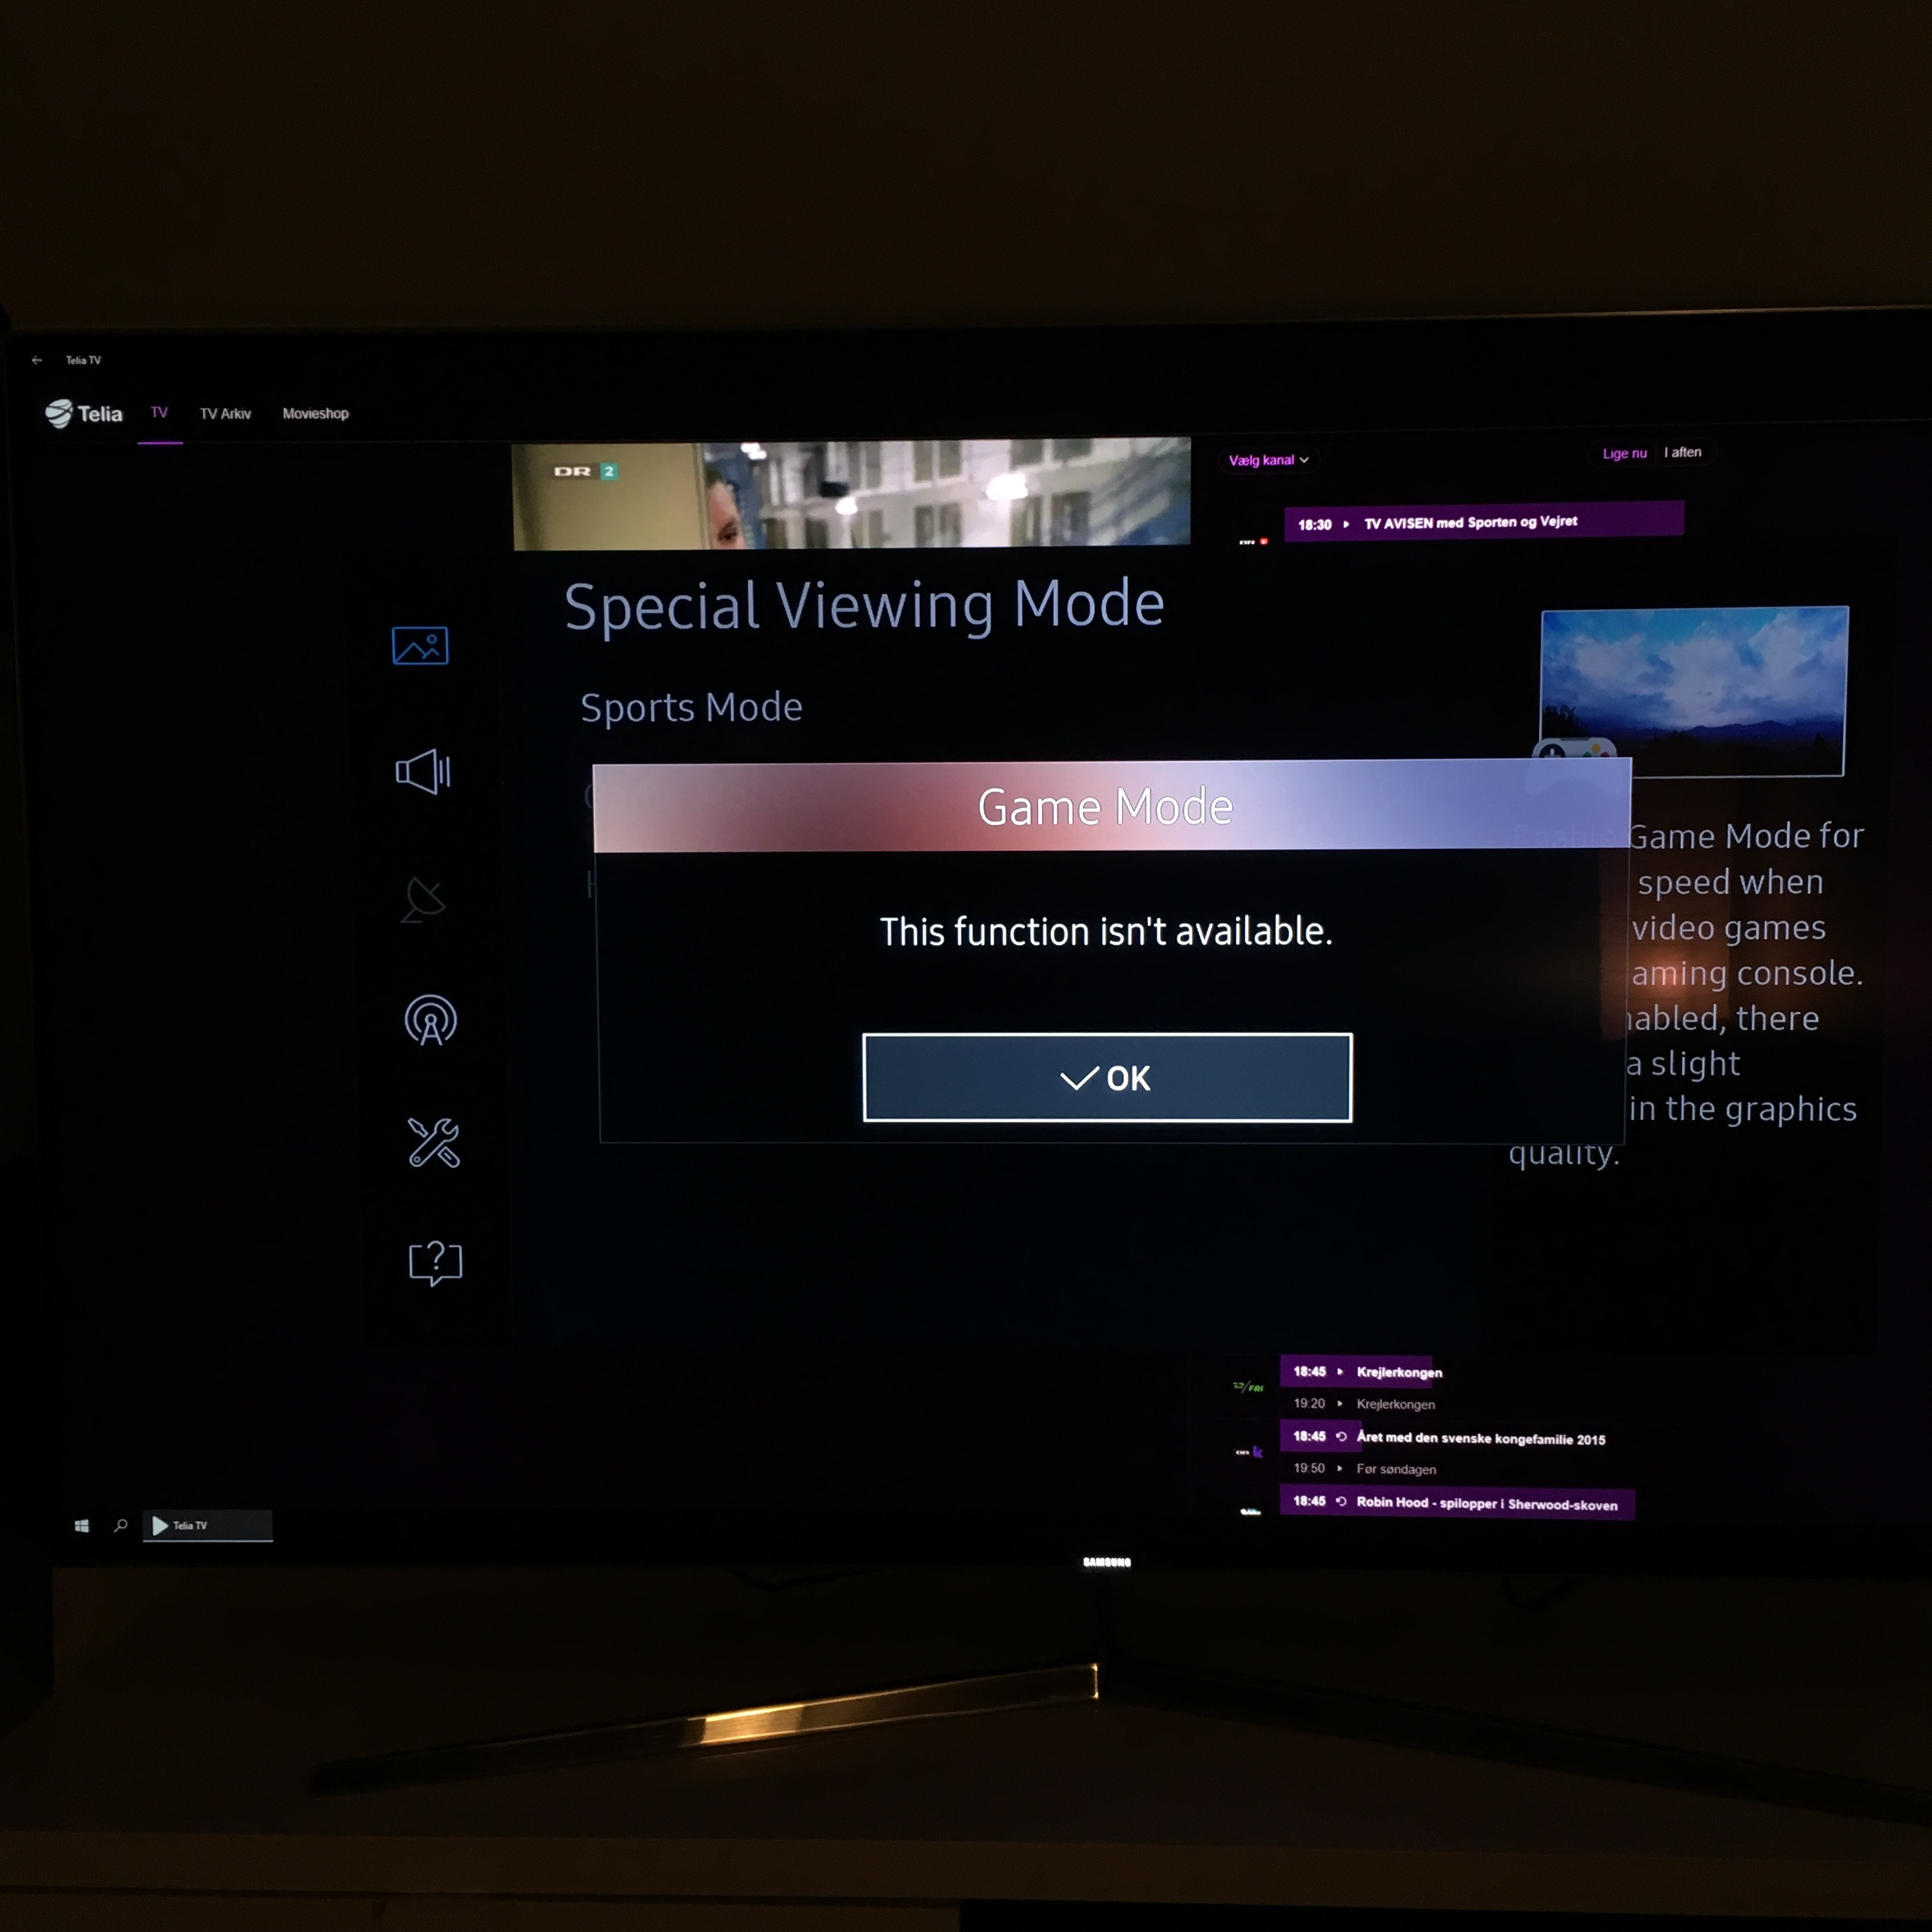 I can't turn on game-mode on my new TV - Troubleshooting